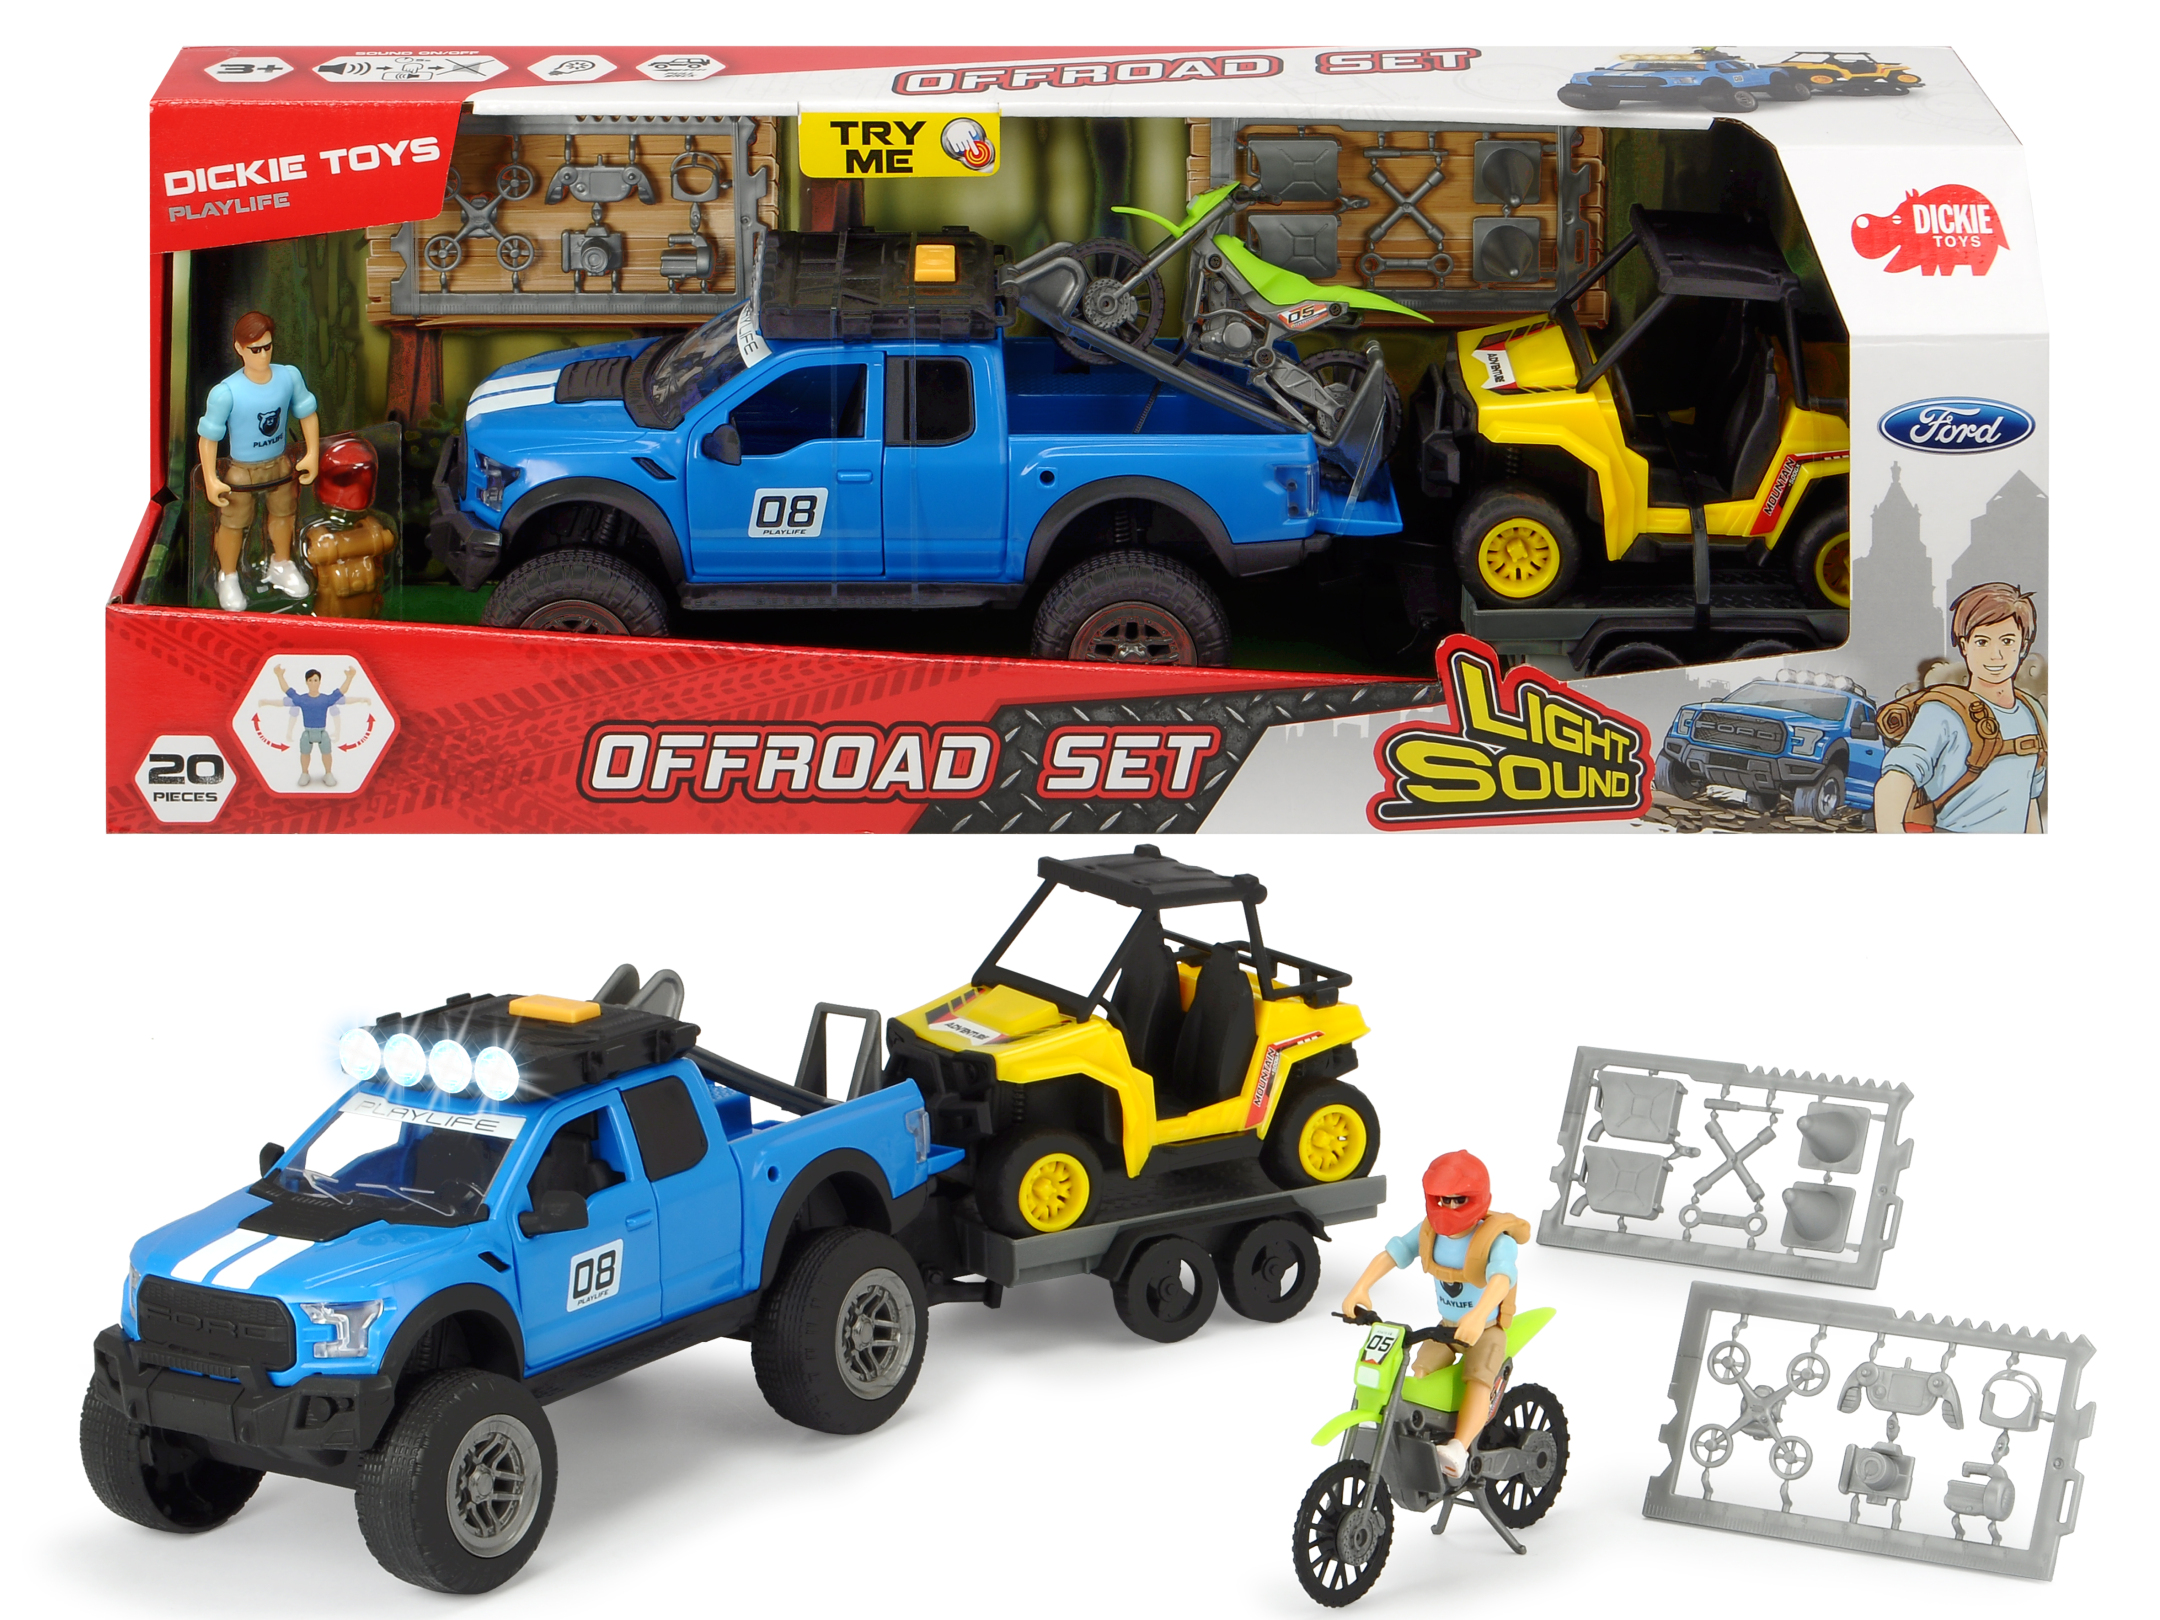 Playlife - Offroad Set